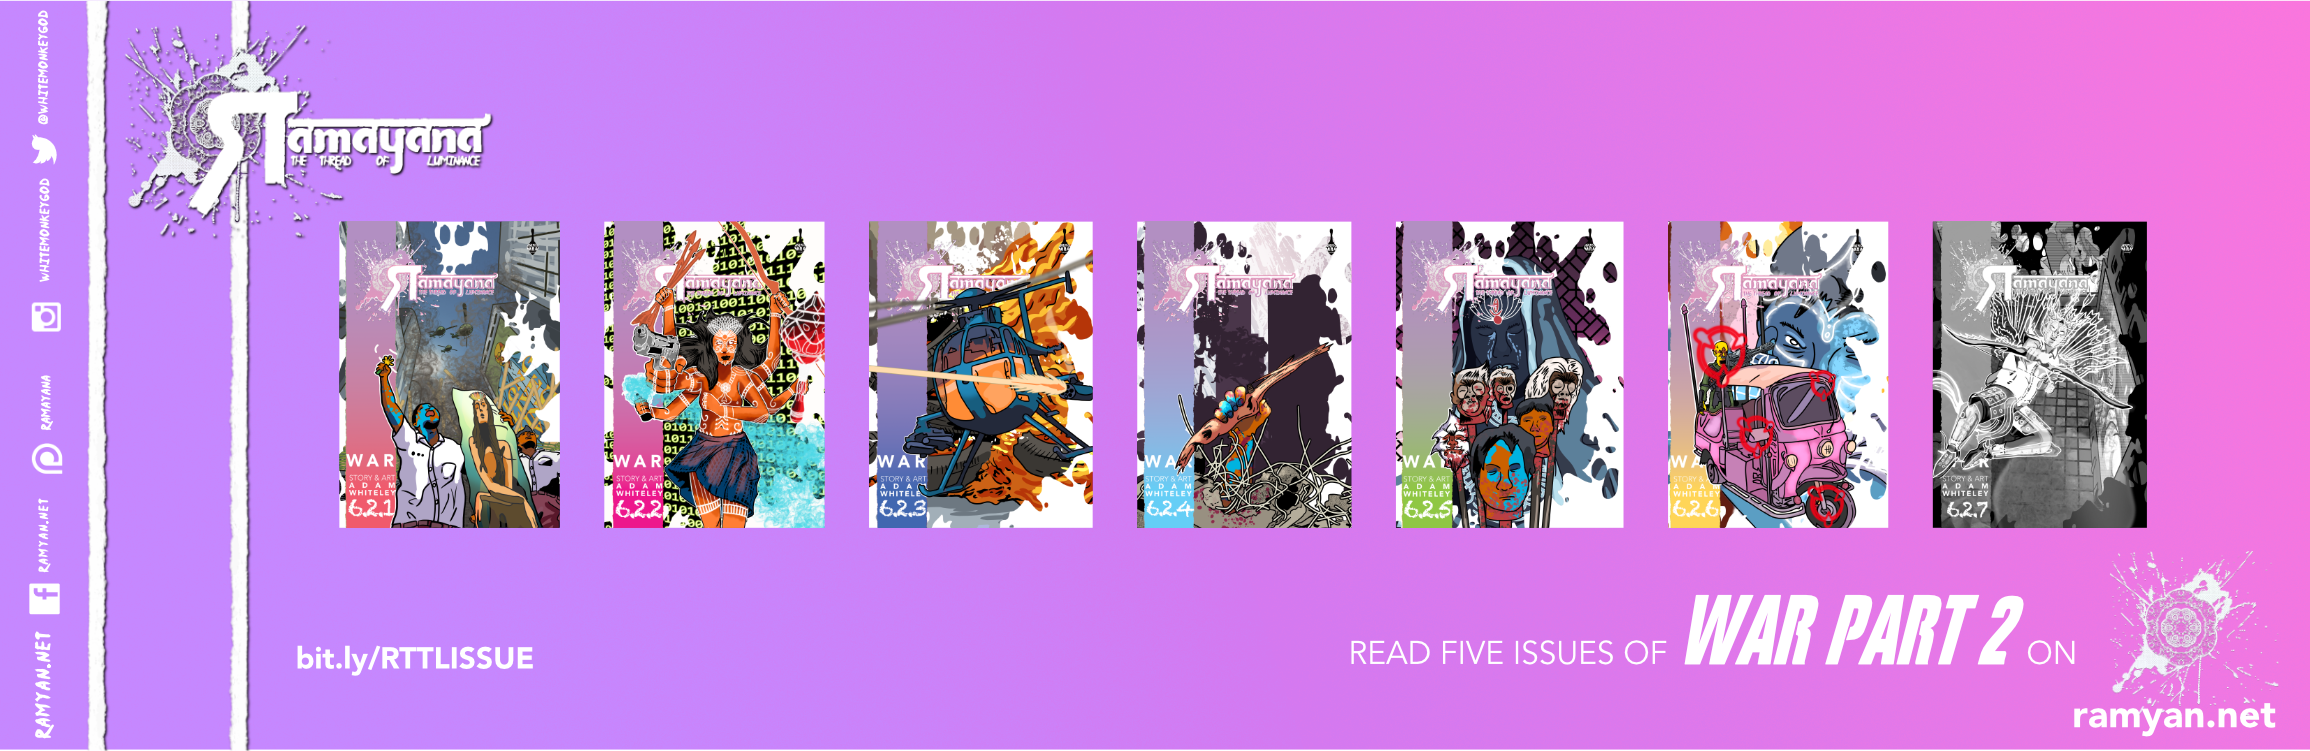 banner for Book 6_2 release@2x.png